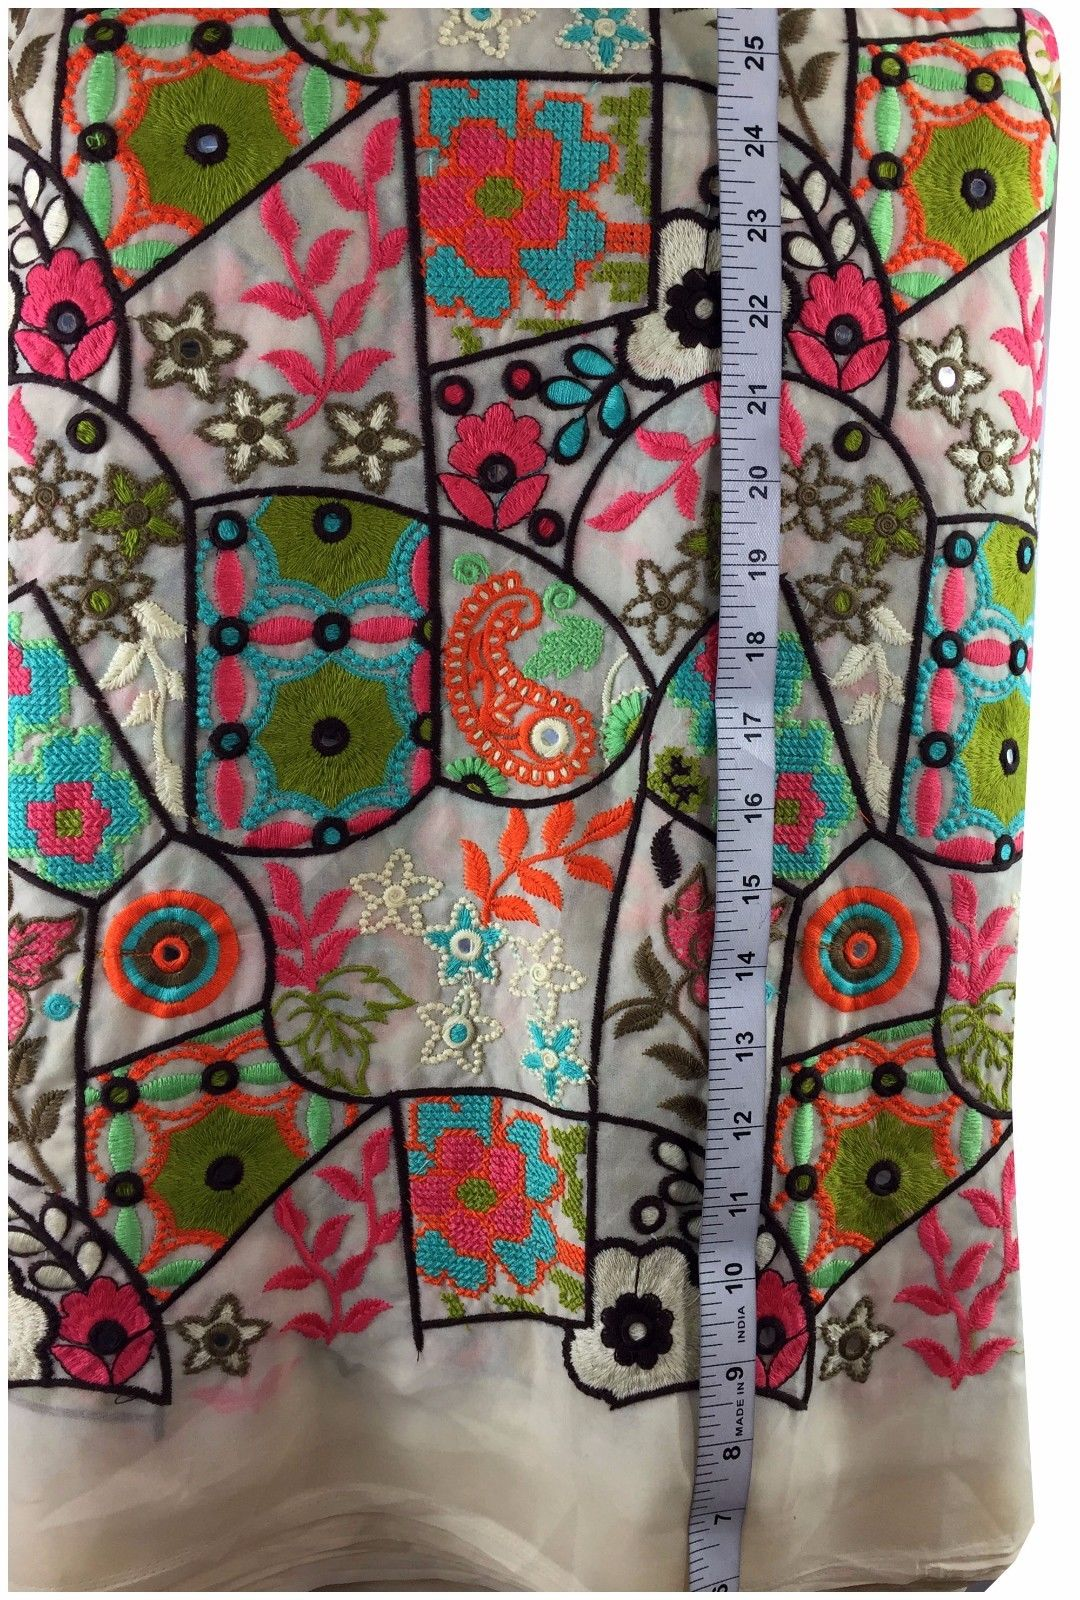 buy fabric material online india running material online india Embroidered Georgette Cream, Orange, Torquoise Blue, Pink, Orange, Green, Pista Green 44 inches Wide 9017